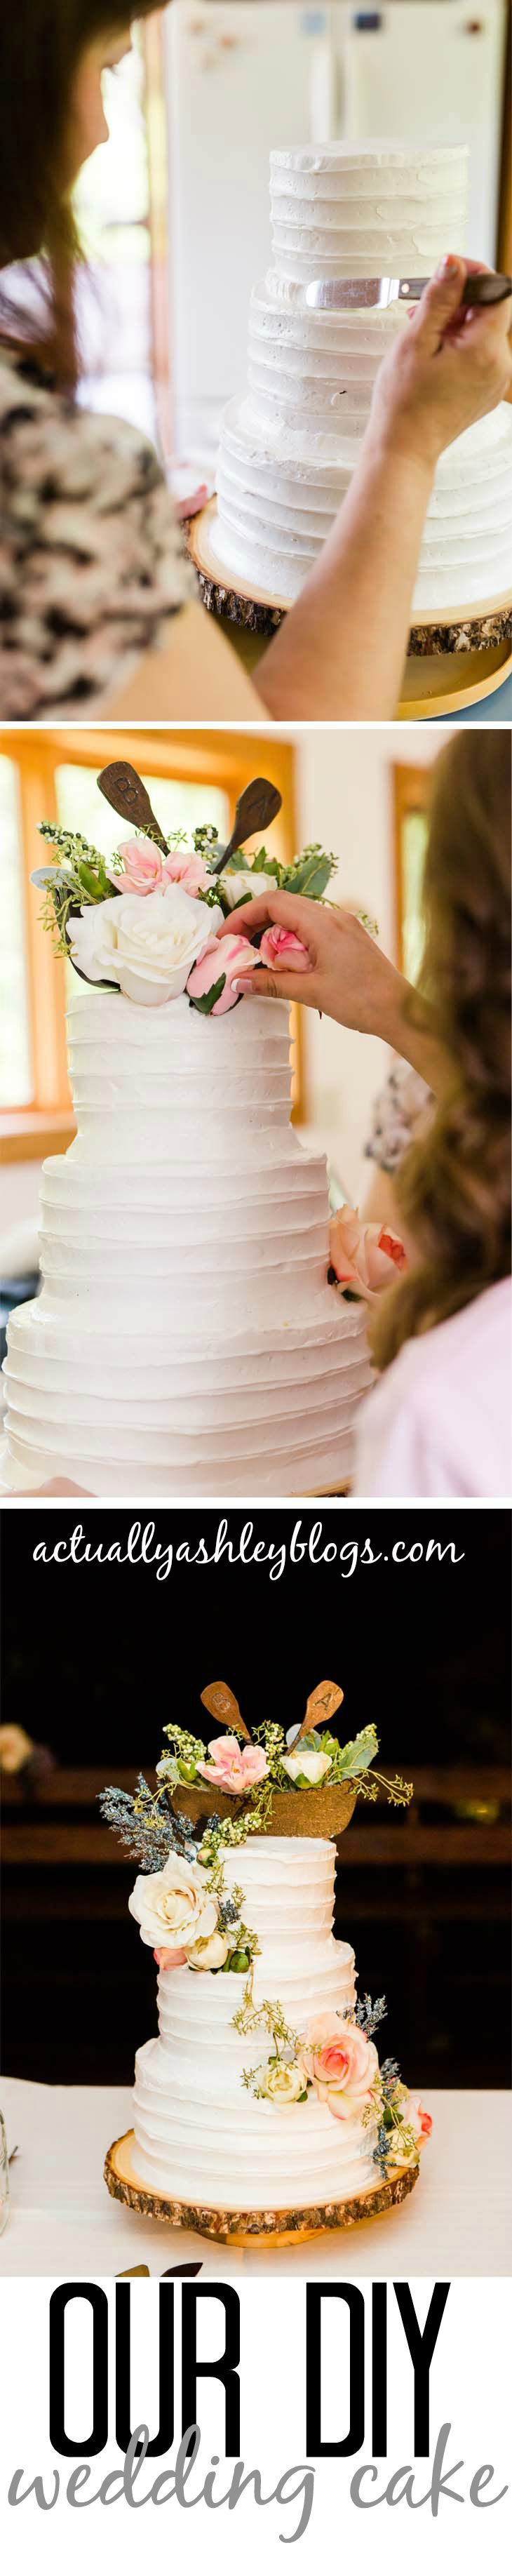 Classic wedding cake design with cascading floral cake decor rustic